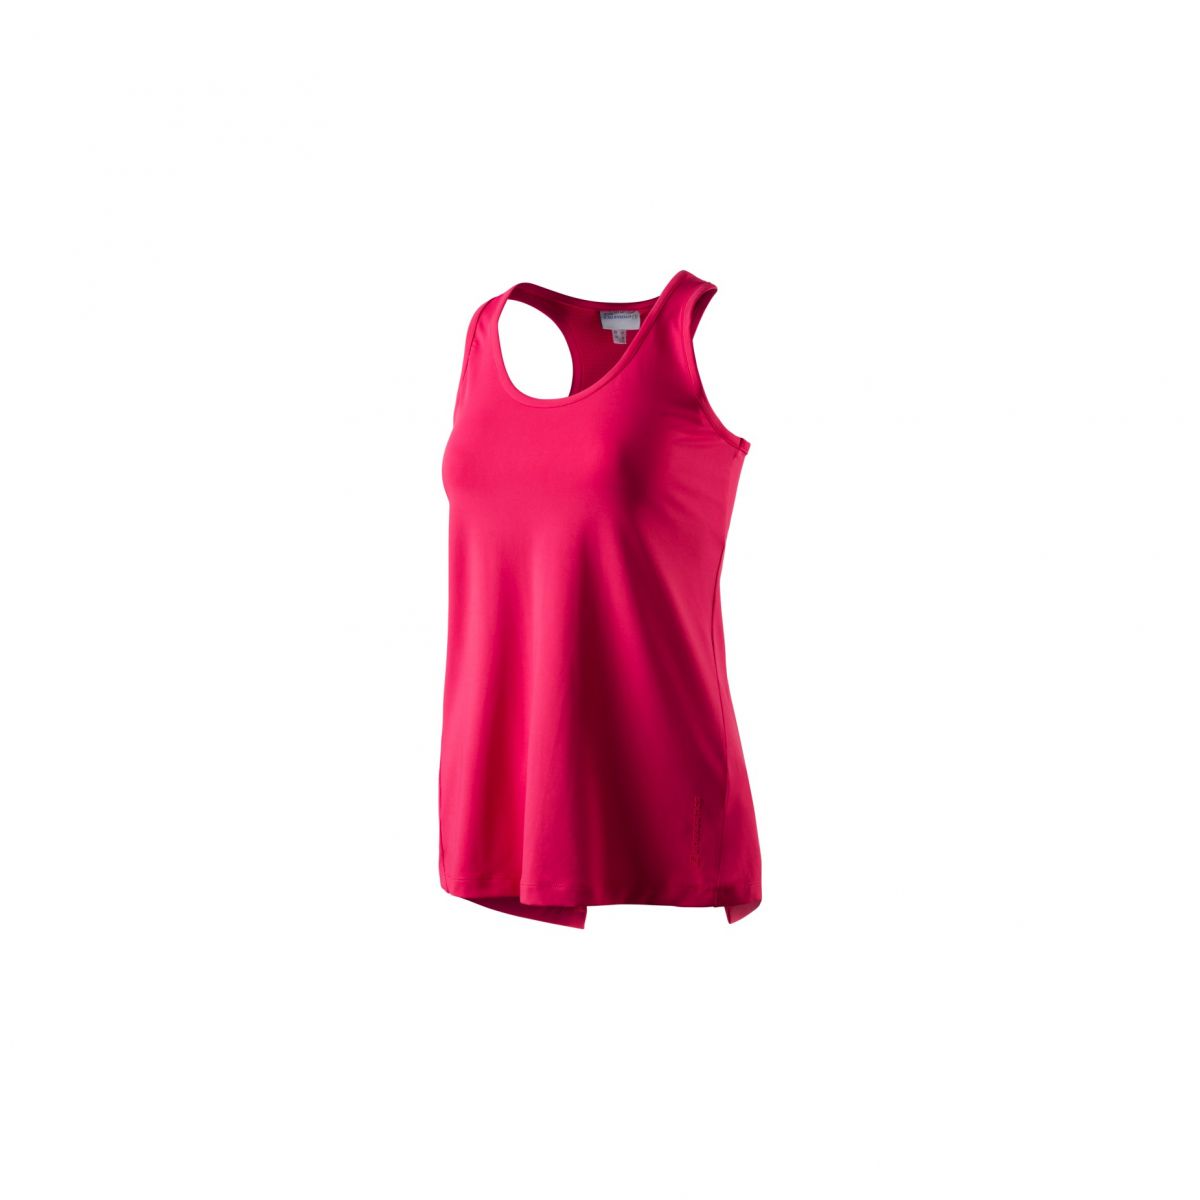 Energetics Damen Oberteile Top